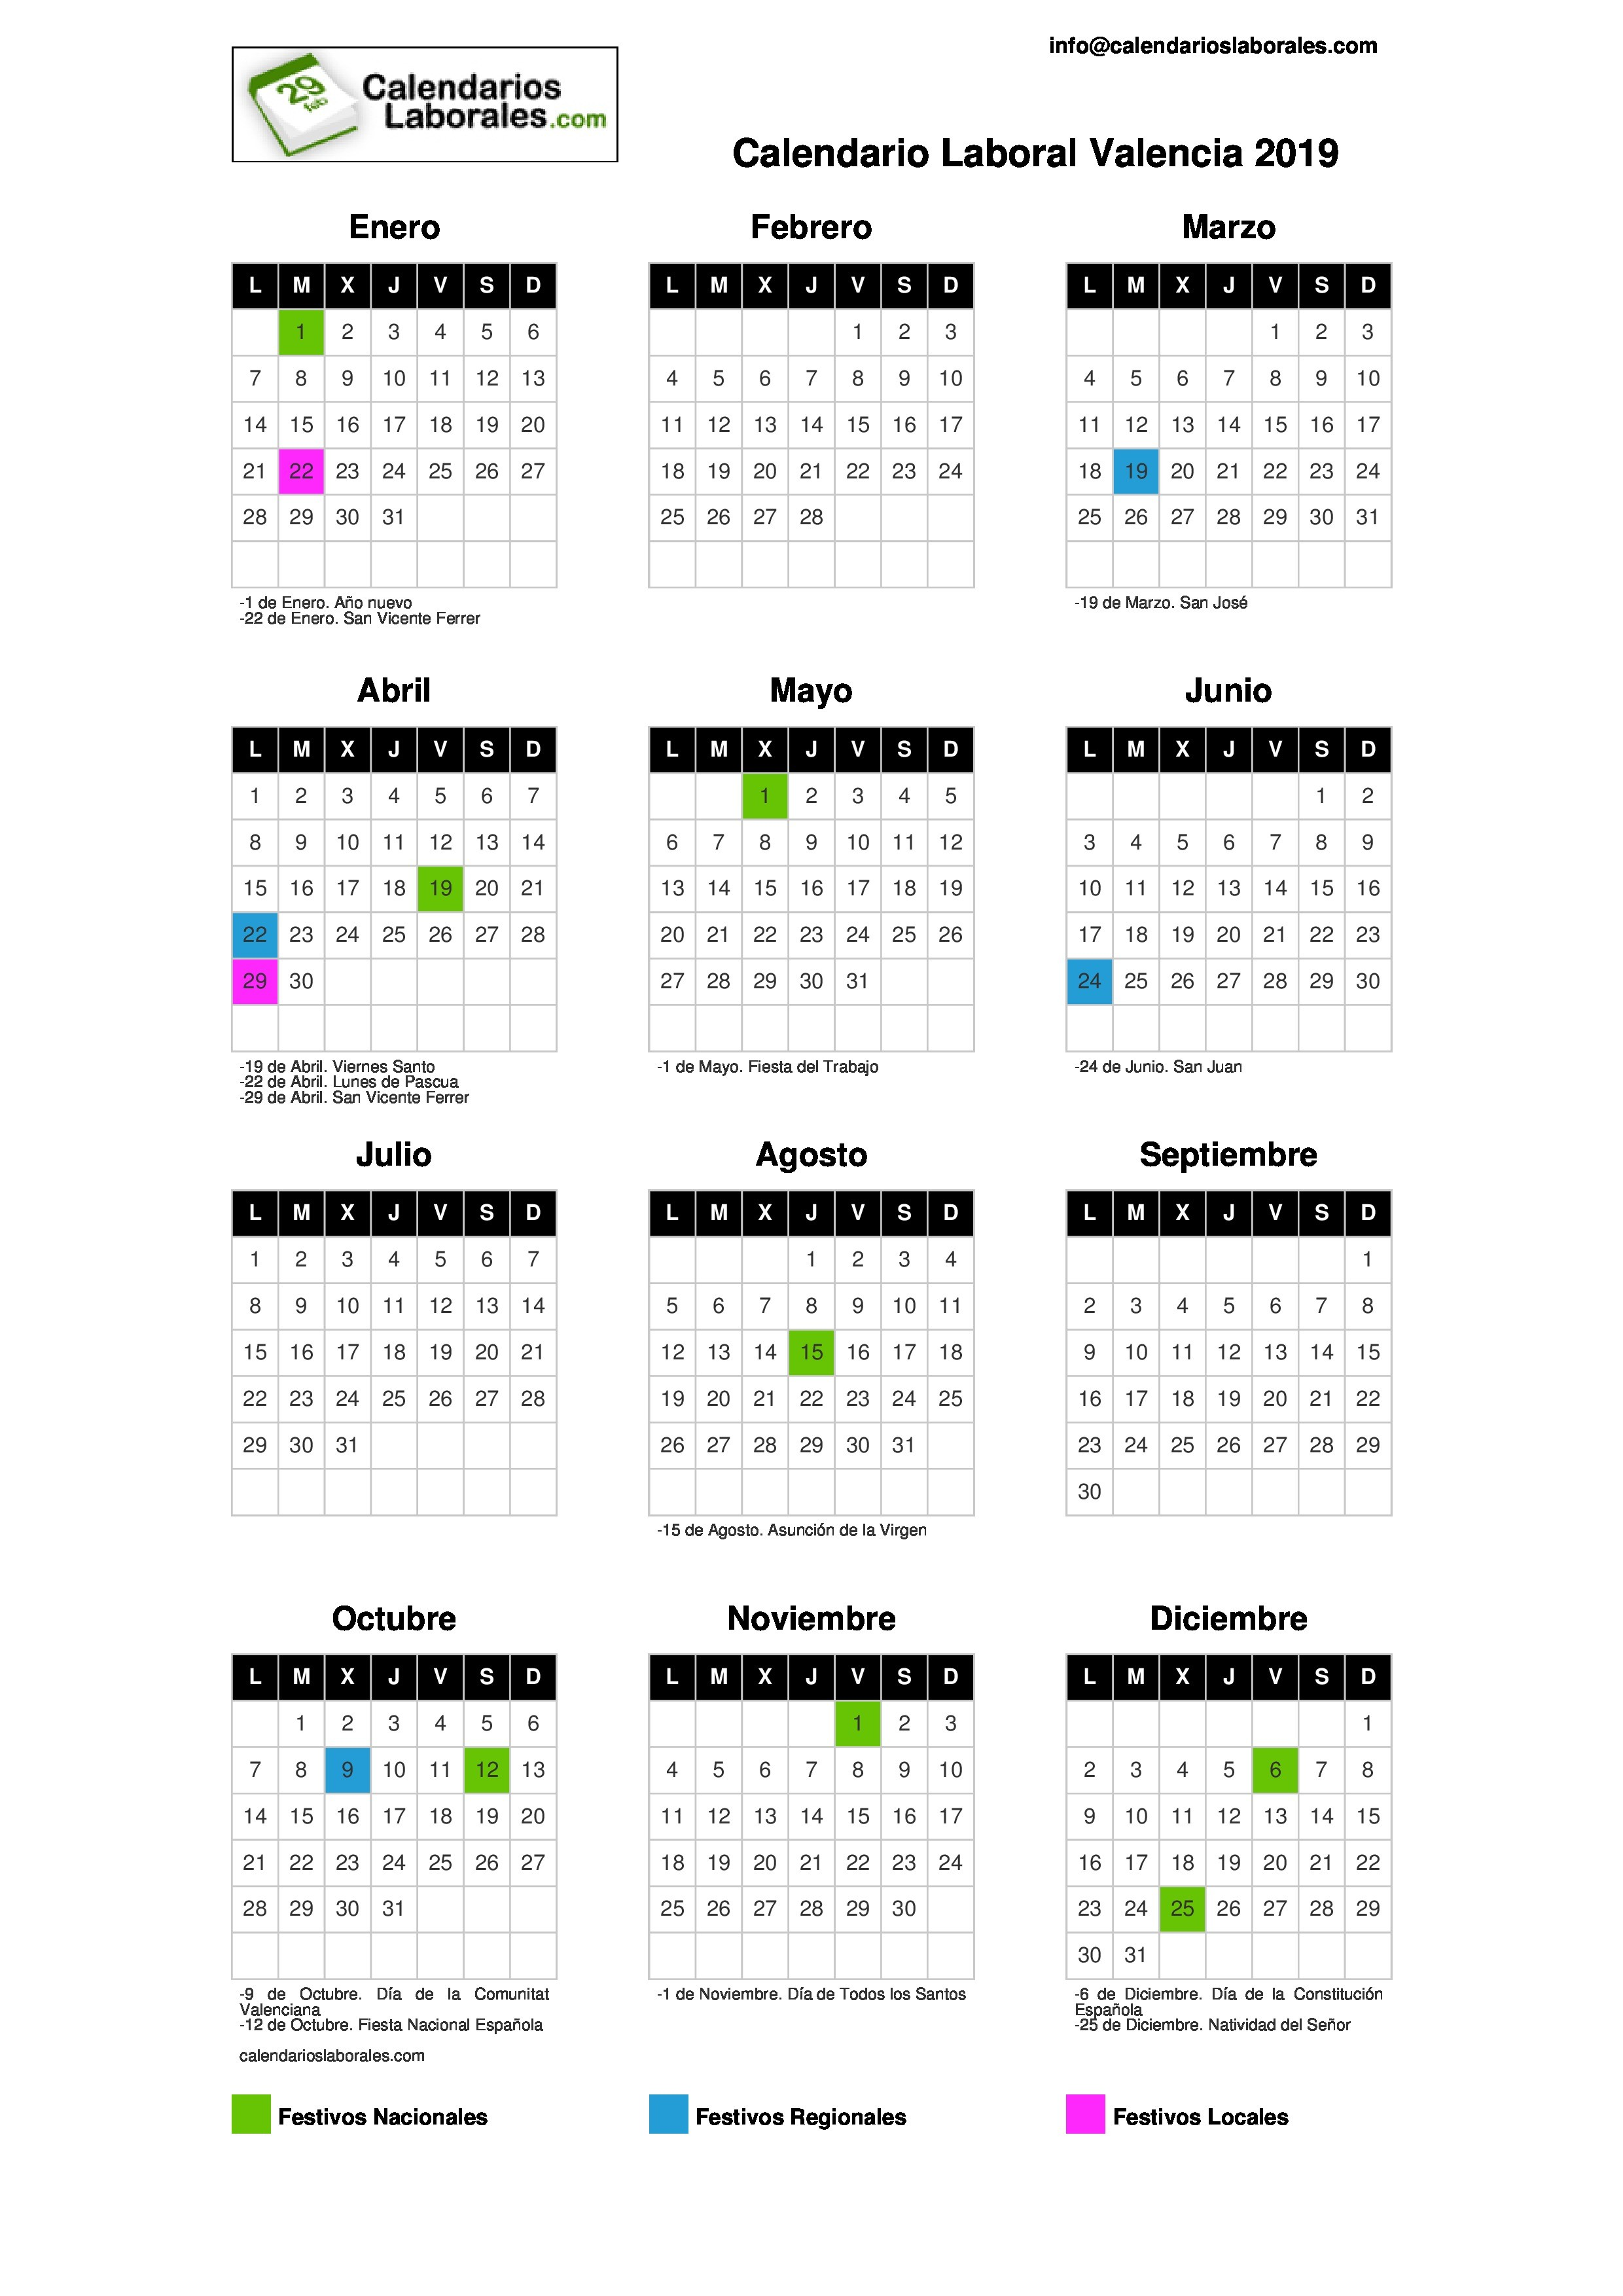 Calendario Escolar 2019 Mallorca Más Actual Calendario Laboral 2019 Gva Seonegativo Of Calendario Escolar 2019 Mallorca Más Actual Calaméo Diario De Noticias De lava